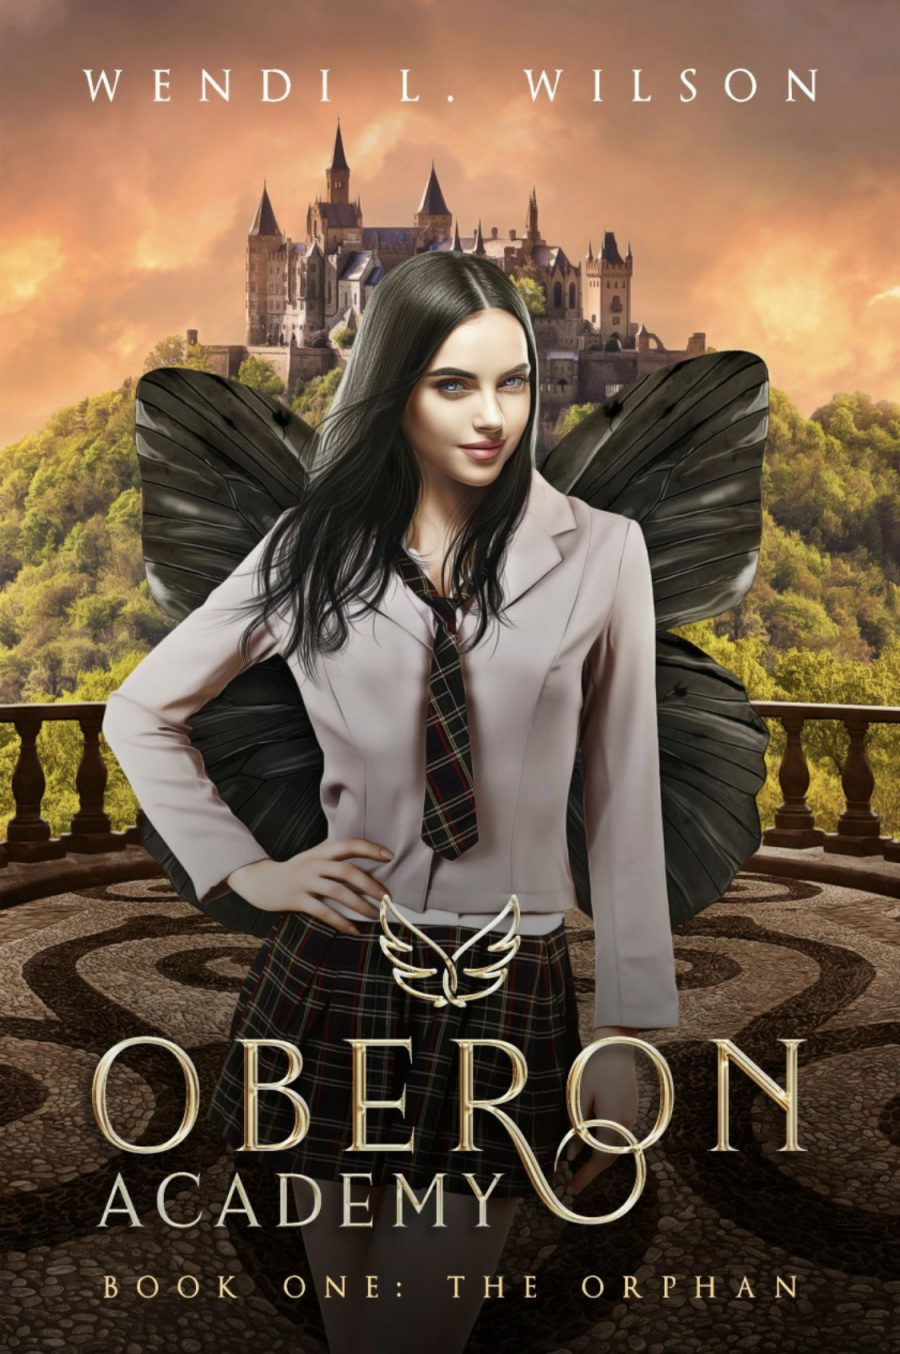 The Orphan: The Oberon Academy - Book 1 by Wendi L. Wilson - A Book Review #BookReview #Academy #PNR #Fae #NewRelease #YA